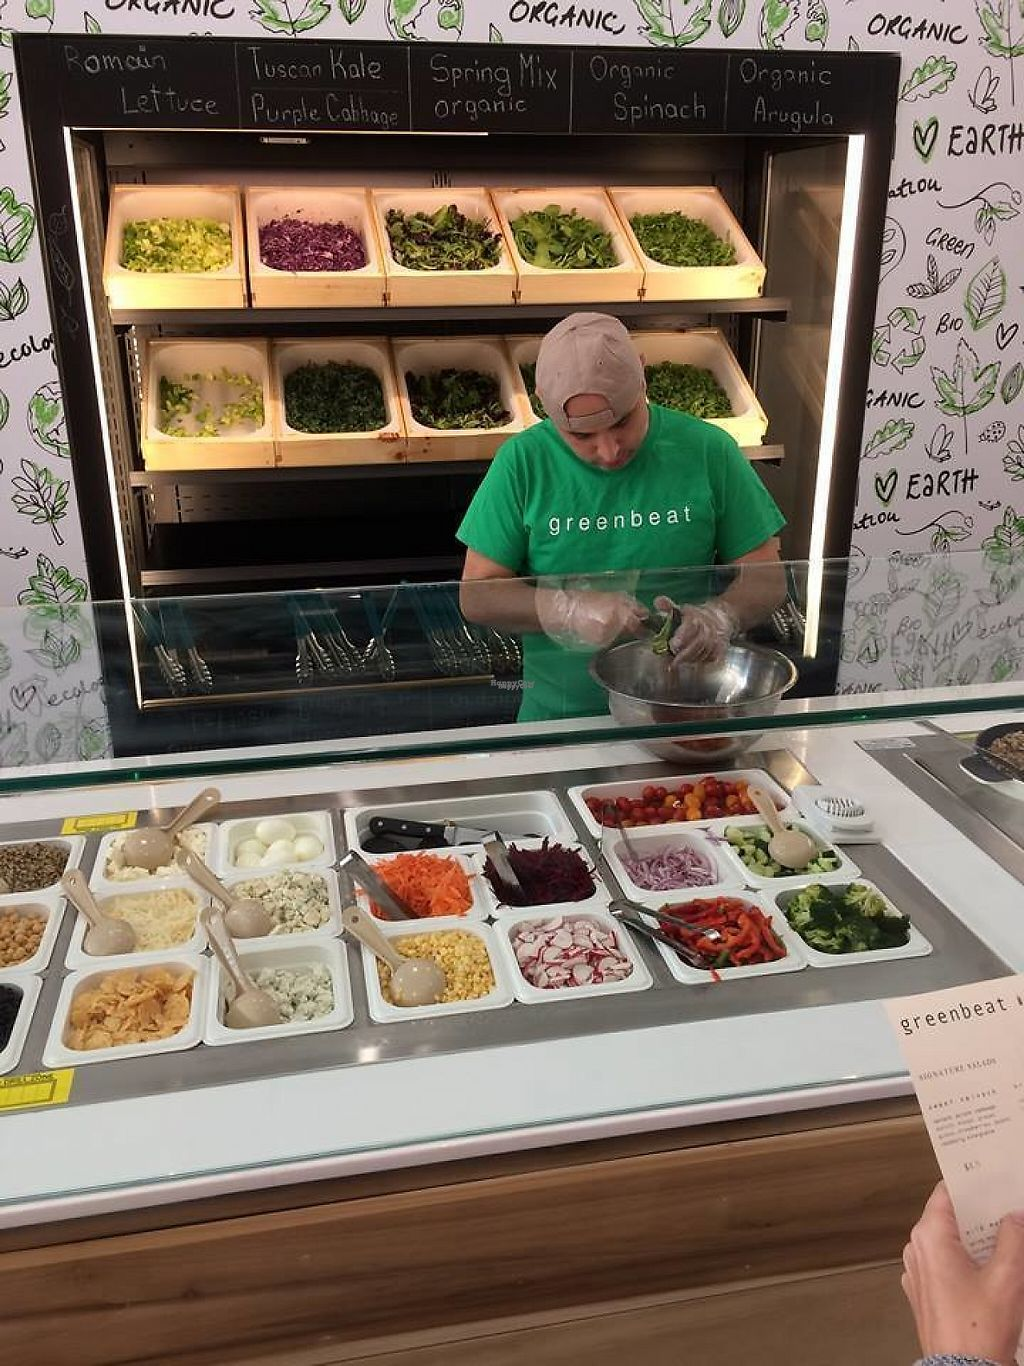 "Photo of Greenbeat  by <a href=""/members/profile/triathletejack"">triathletejack</a> <br/>Part of the salad prep area; choice of 10 lettuces on the wall, 28 toppings below <br/> March 29, 2017  - <a href='/contact/abuse/image/89266/242427'>Report</a>"